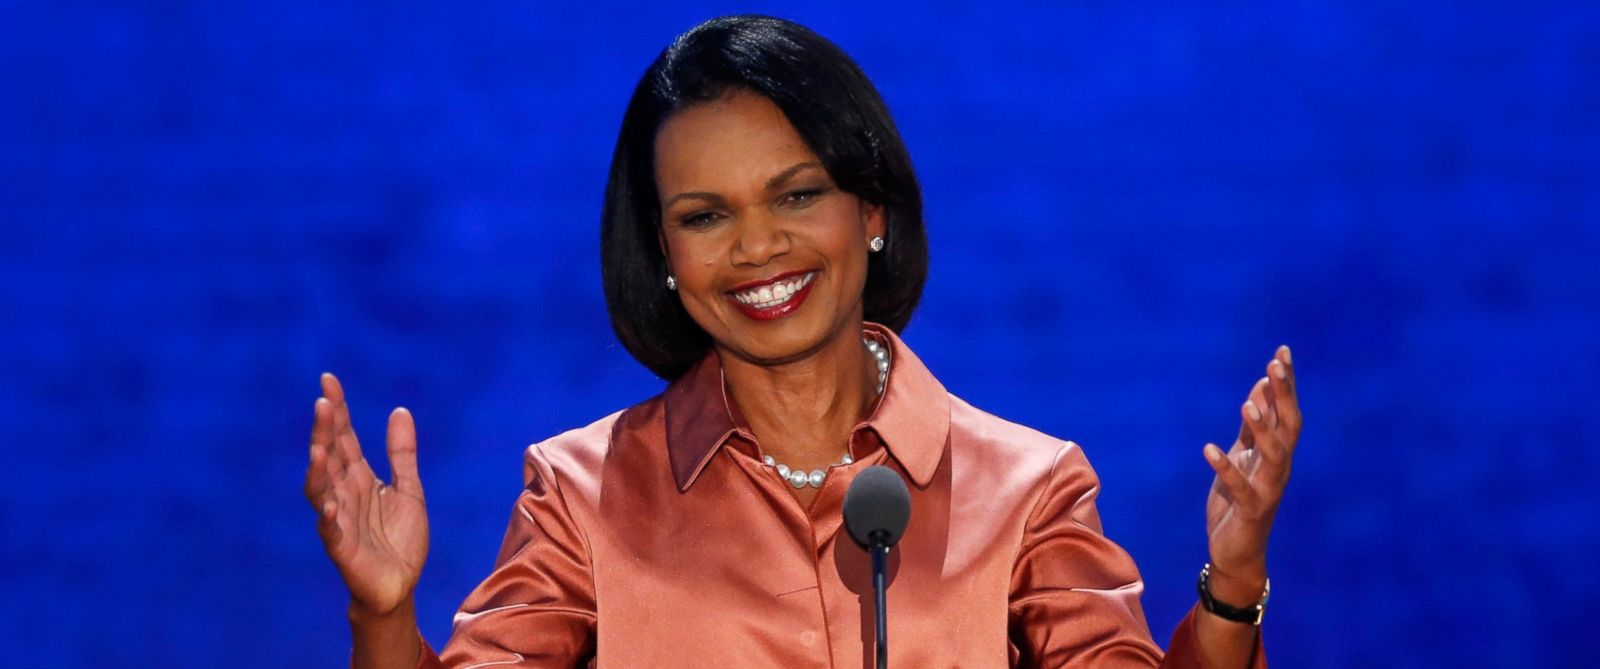 PHOTO: Former Secretary of State Condoleezza Rice arrives to address delegates during the third session of the Republican National Convention in Tampa, Fla., in this Aug. 29, 2012, file photo.